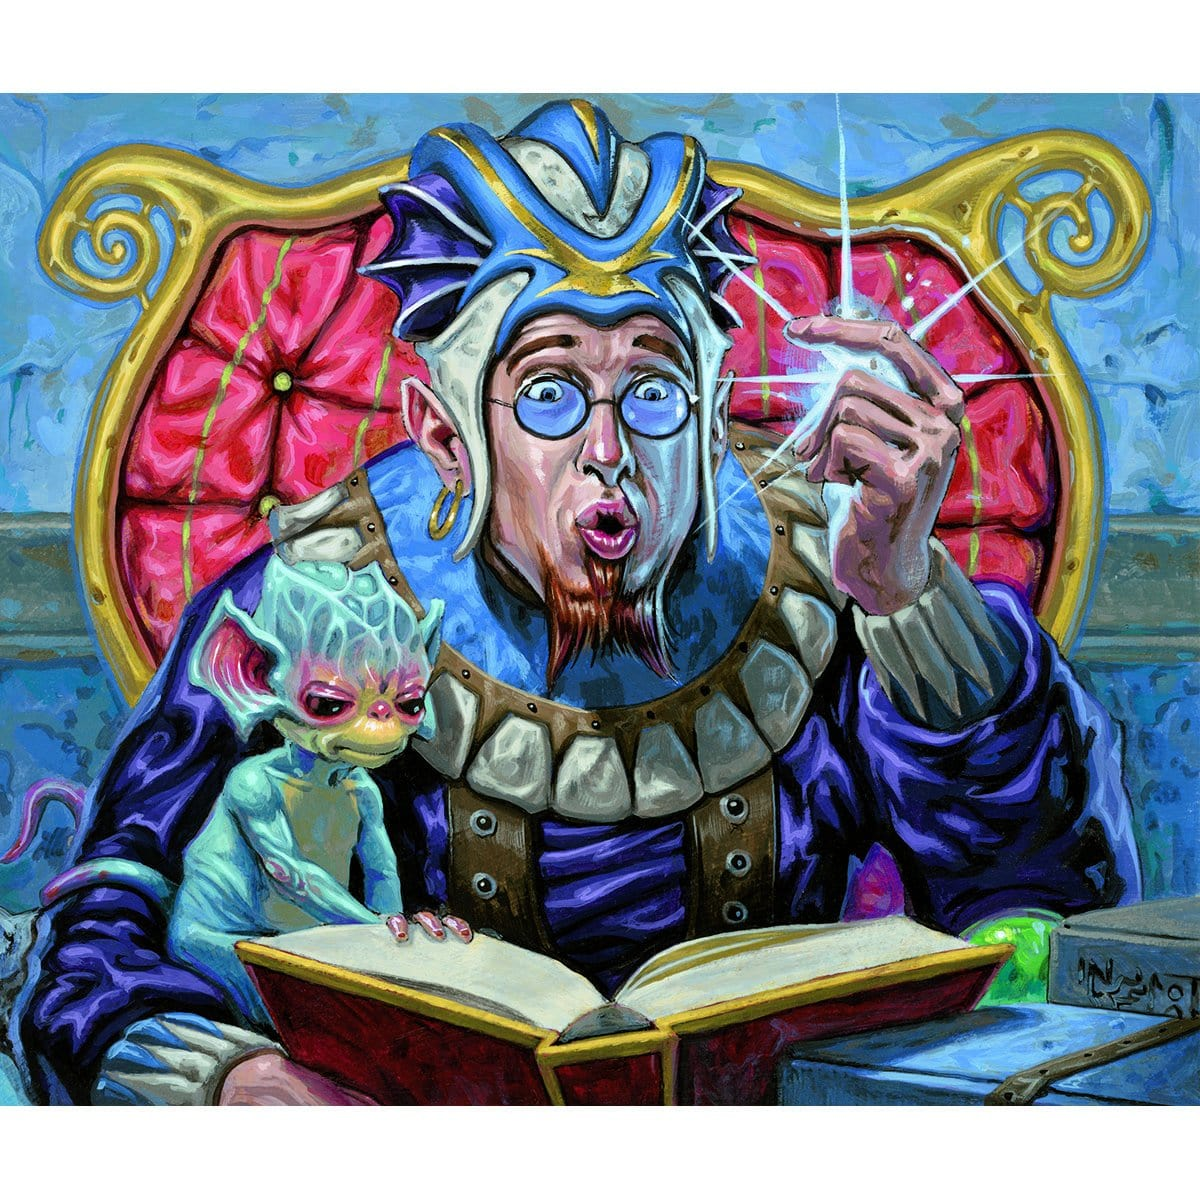 Inspiration Print - Print - Original Magic Art - Accessories for Magic the Gathering and other card games